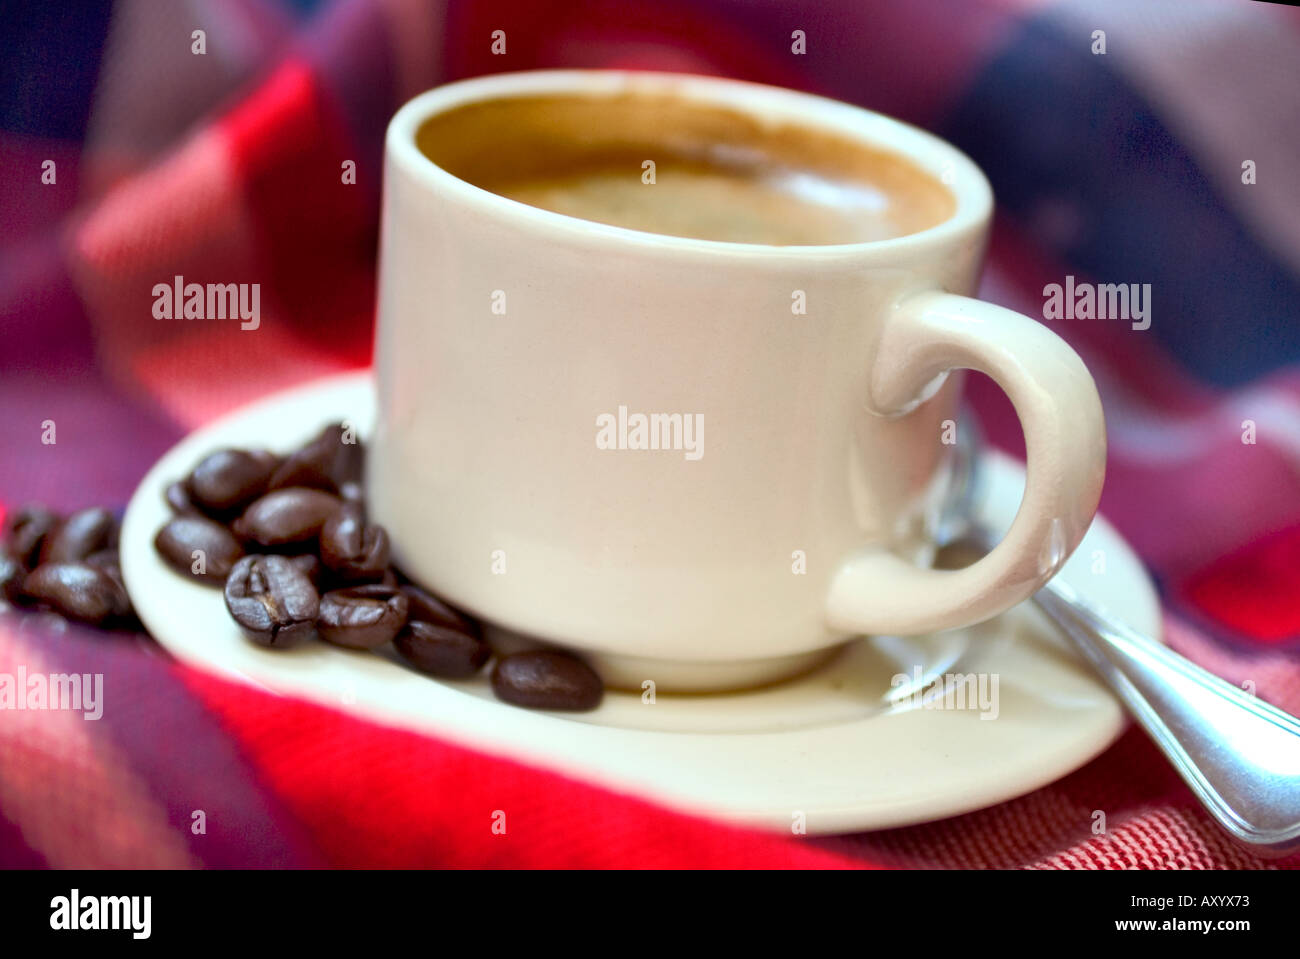 f75ad184676 White cup filled with hot espresso on colorful red background with pile of  coffee beans